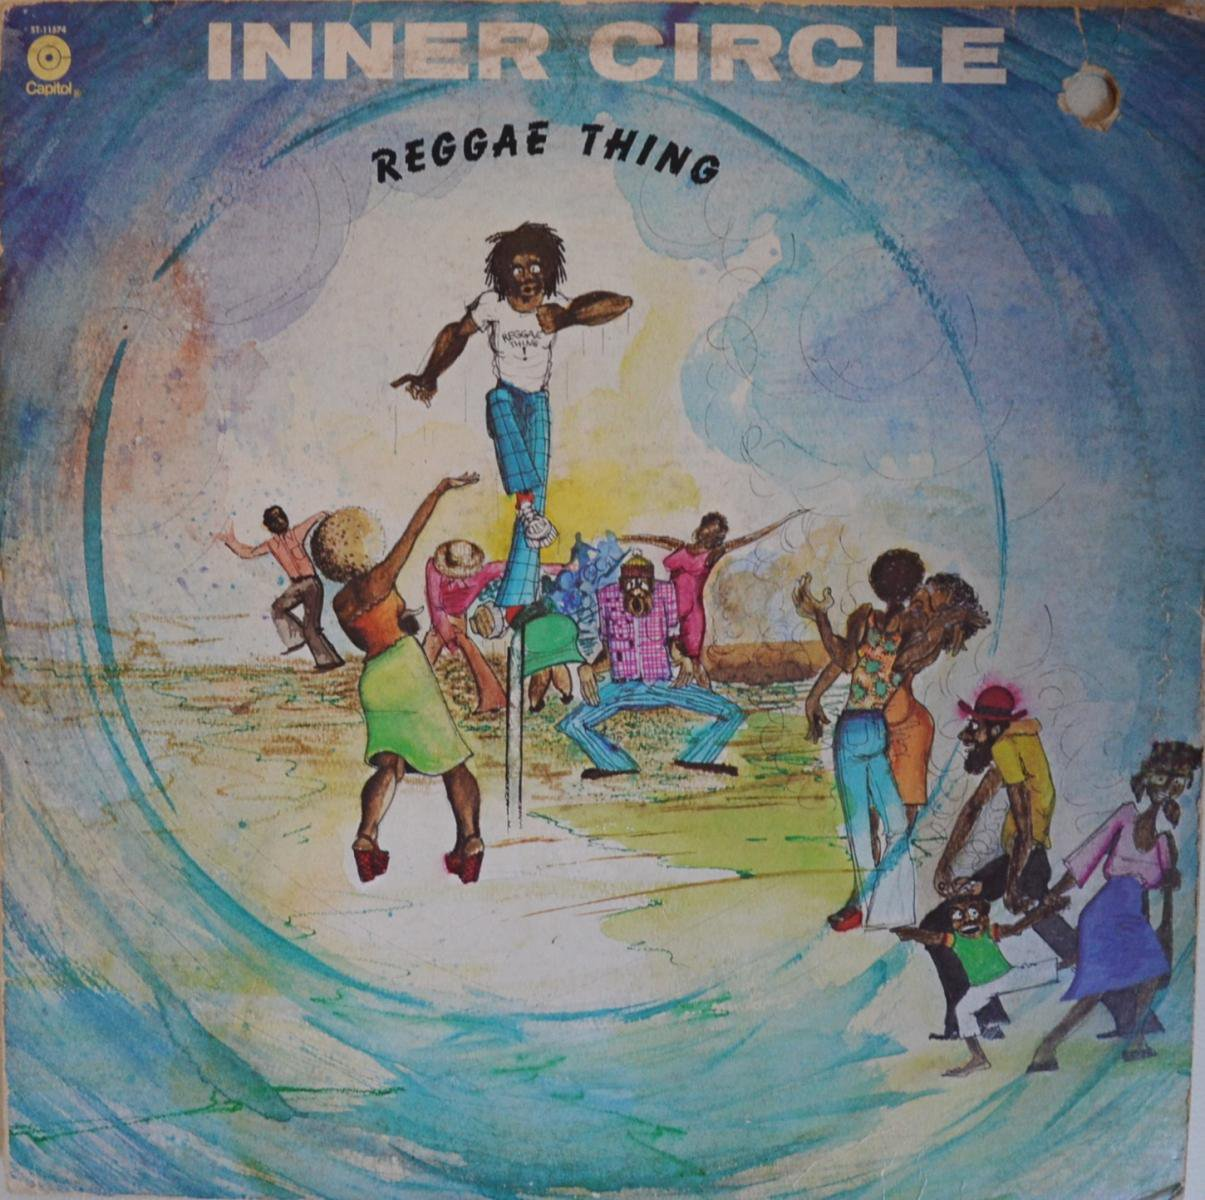 INNER CIRCLE / REGGAE THING (LP)